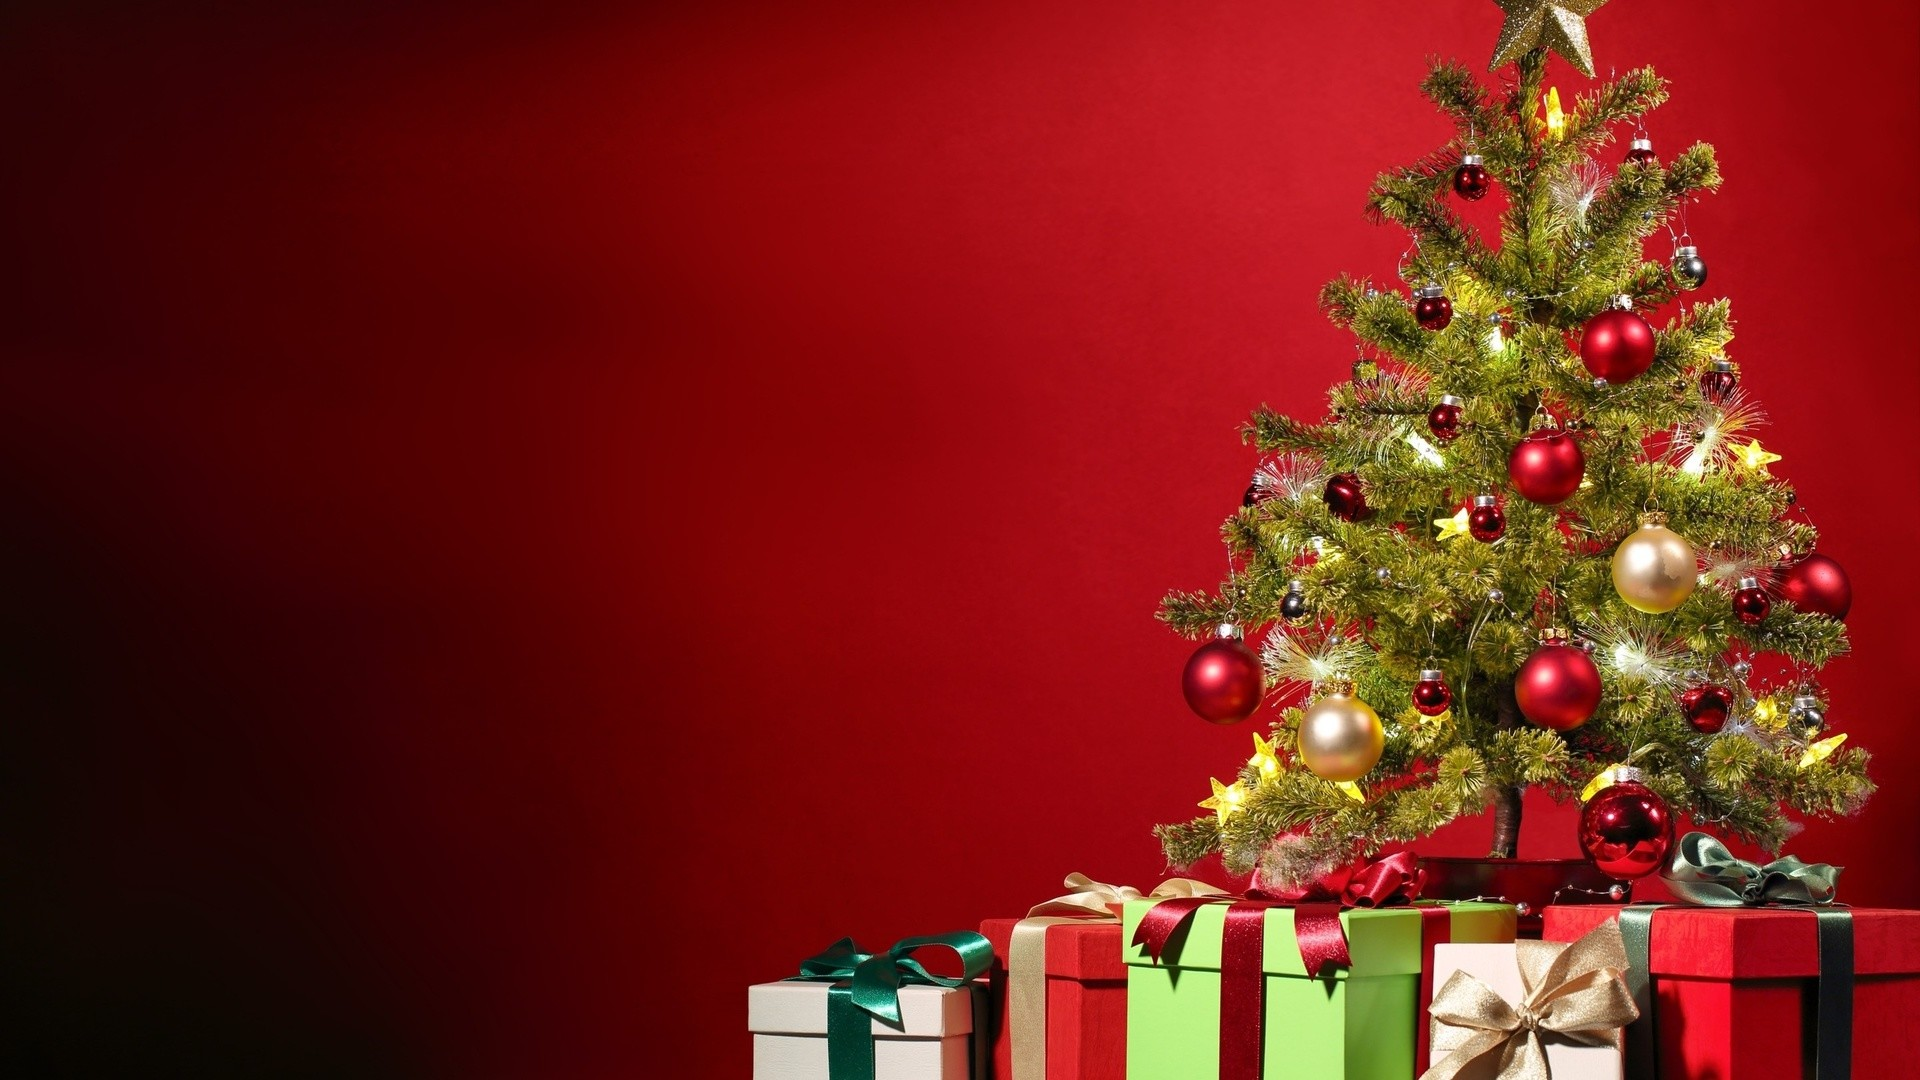 Merry Christmas tree free download